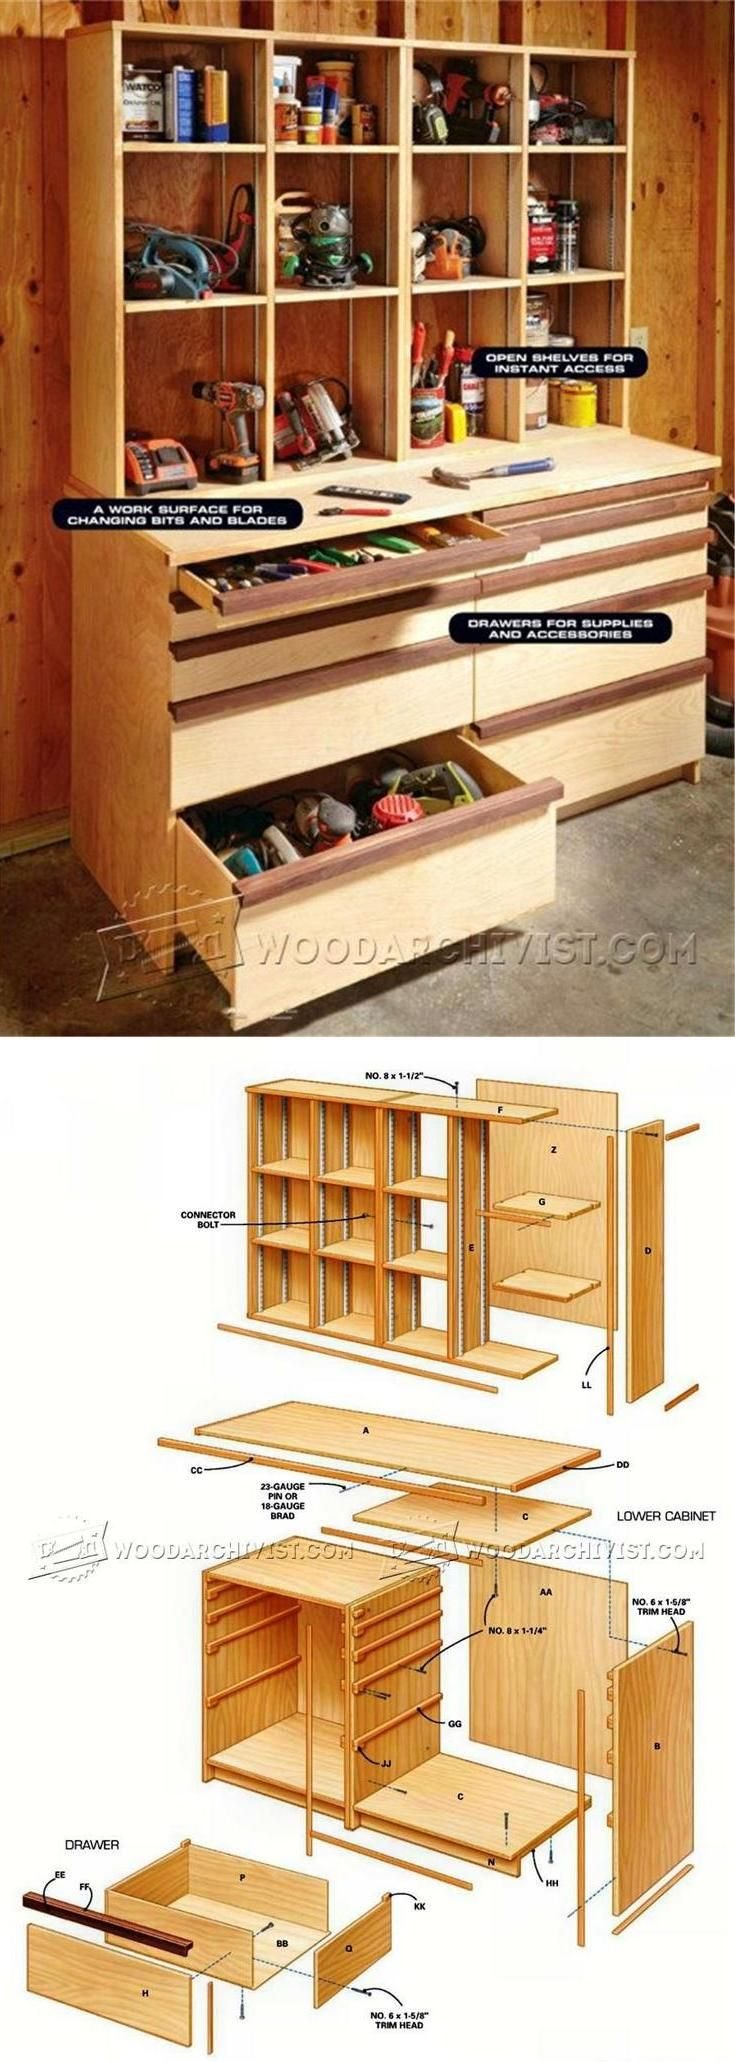 Ultimate Tool Cabinet Plans - Workshop Solutions Plans, Tips and Tricks | WoodArchivist.com